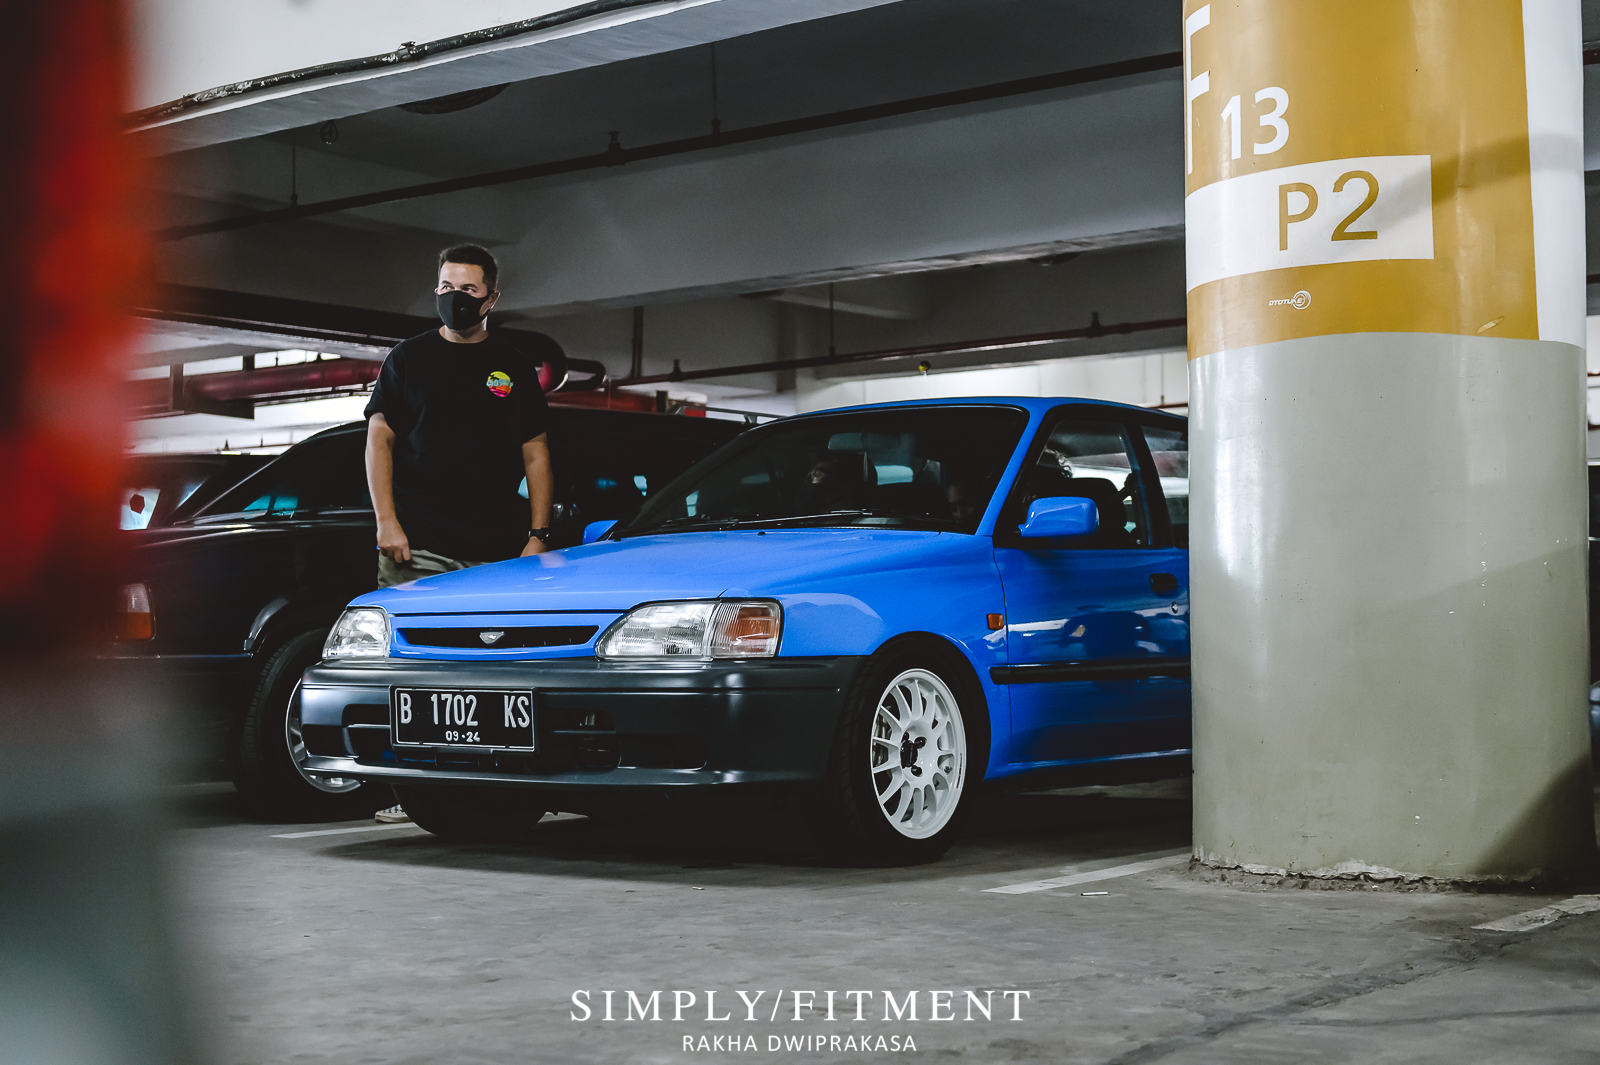 LOWFITMENT DAY 12 DAY 2 AT P2 KUNINGAN CITY MALL - 22 AGUSTUS 2020